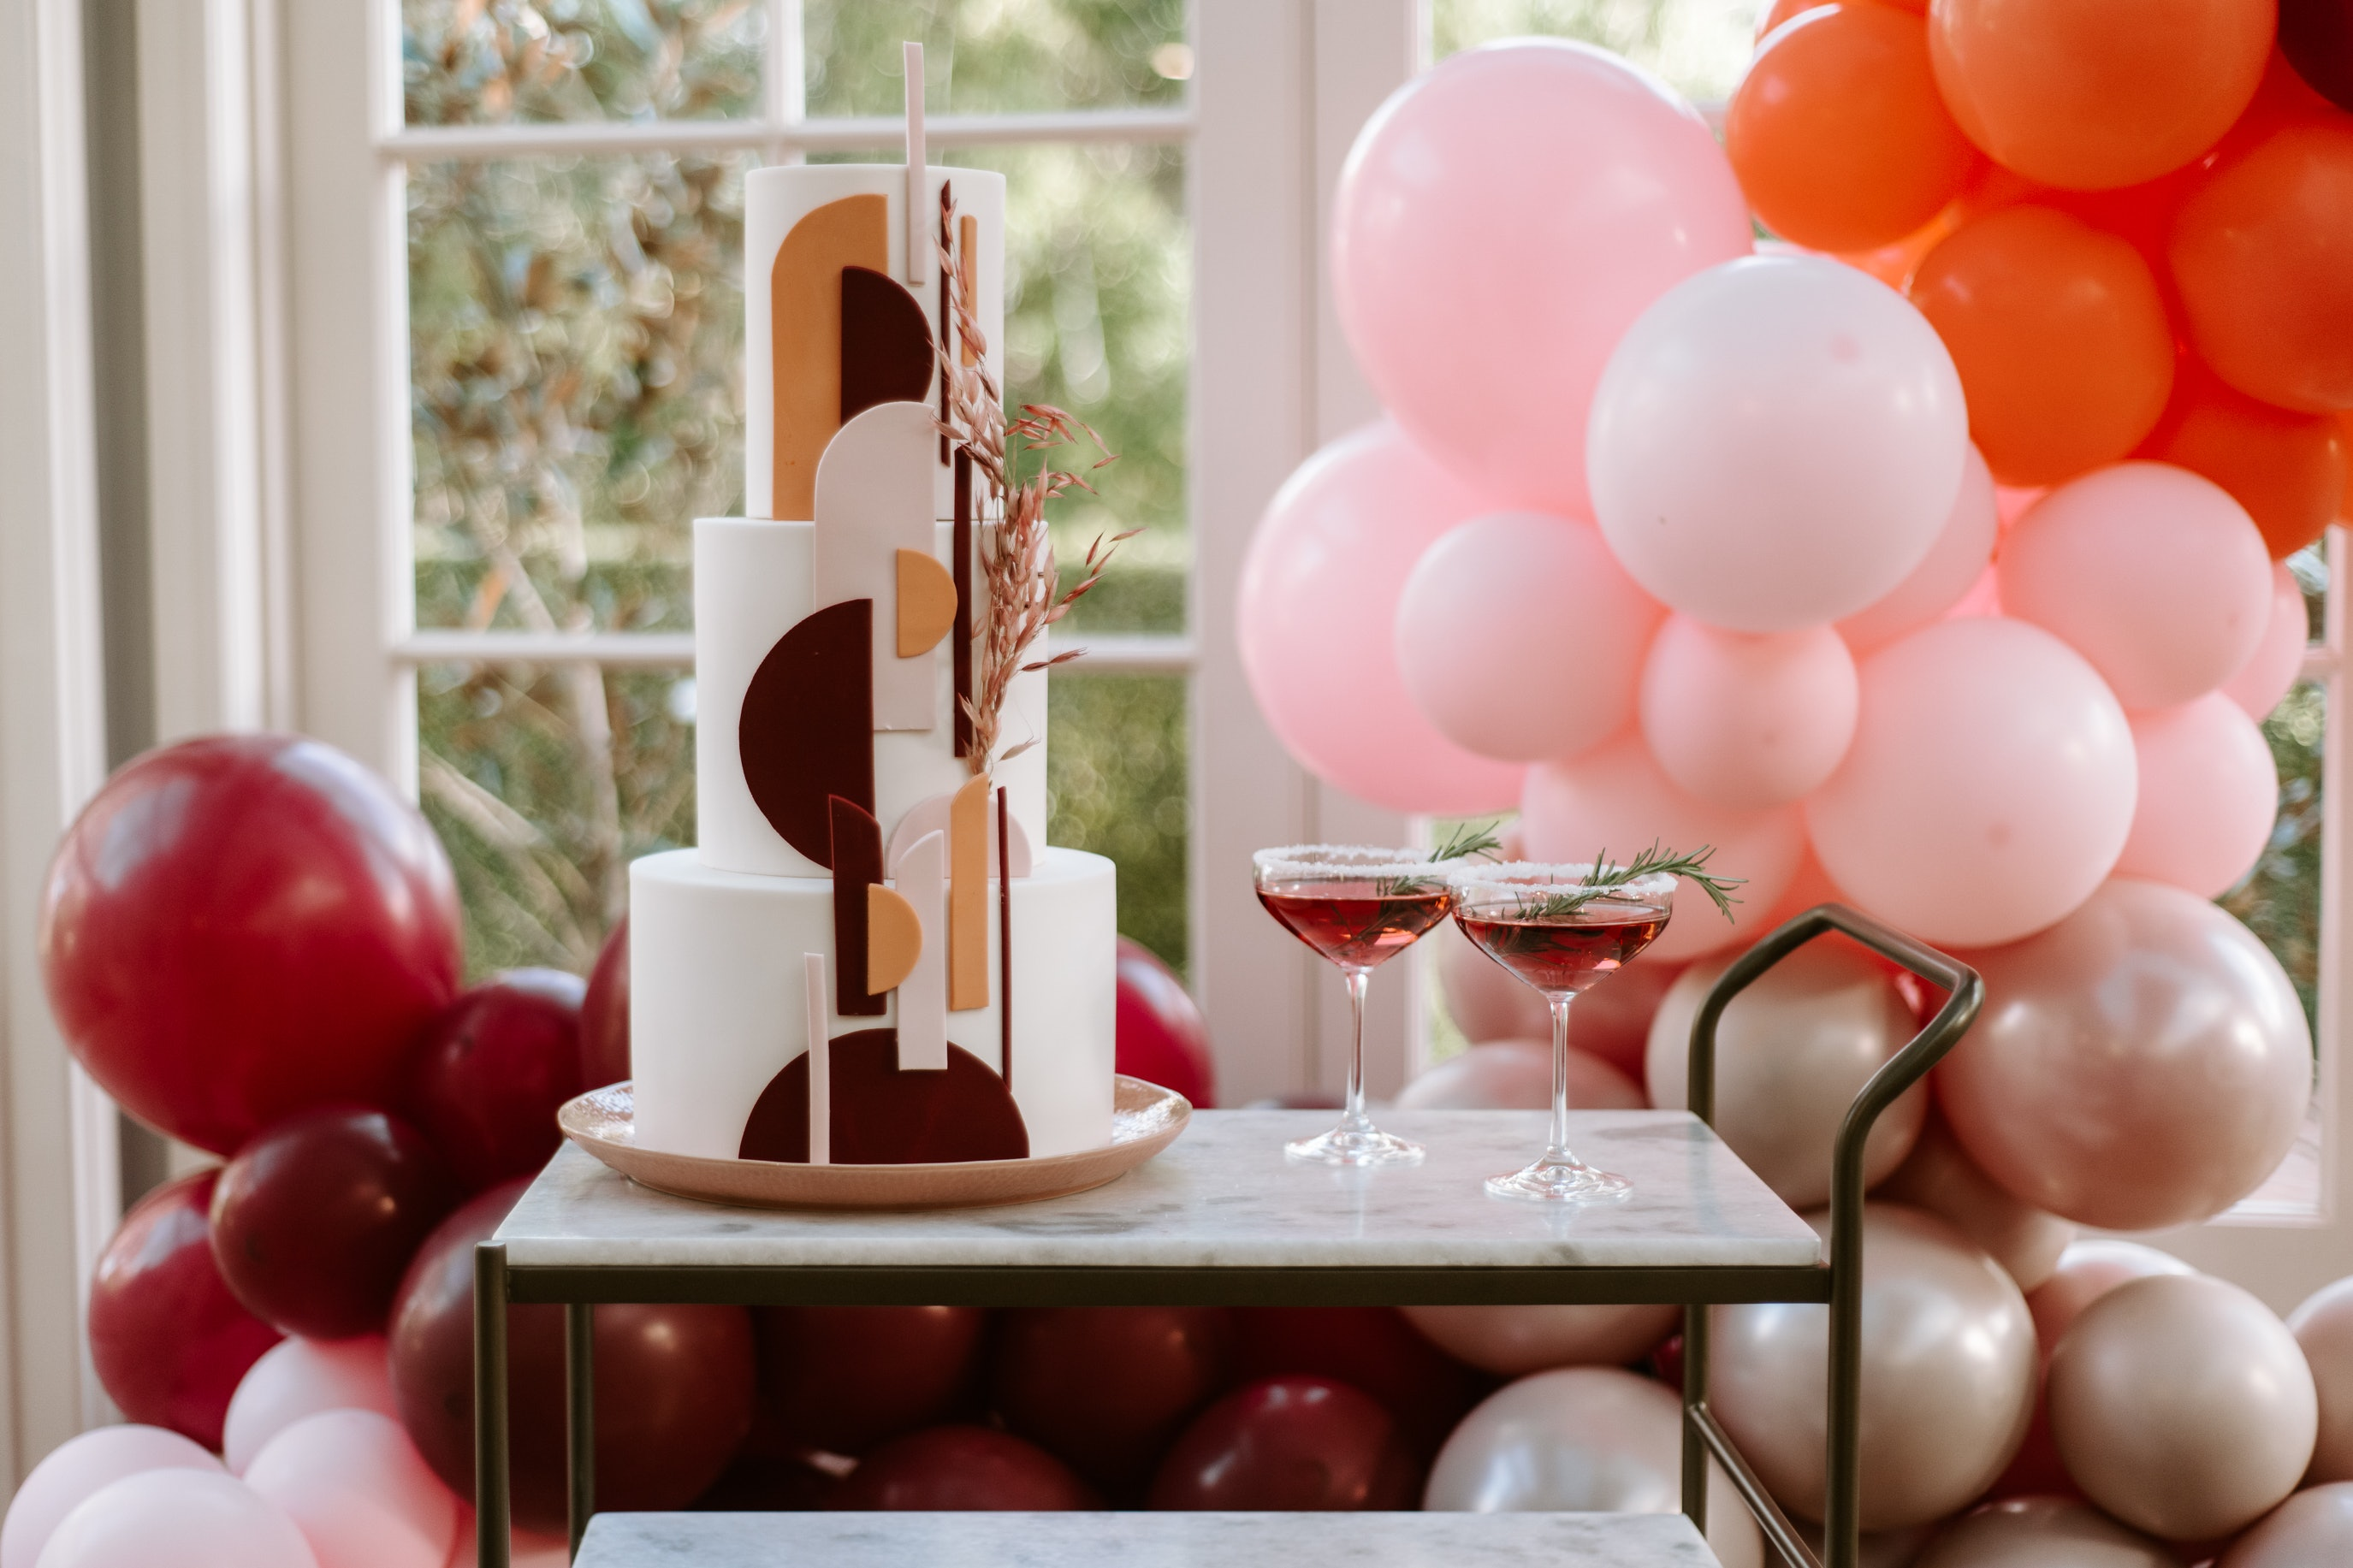 Modern wedding cake on marble cart with balloons in the background